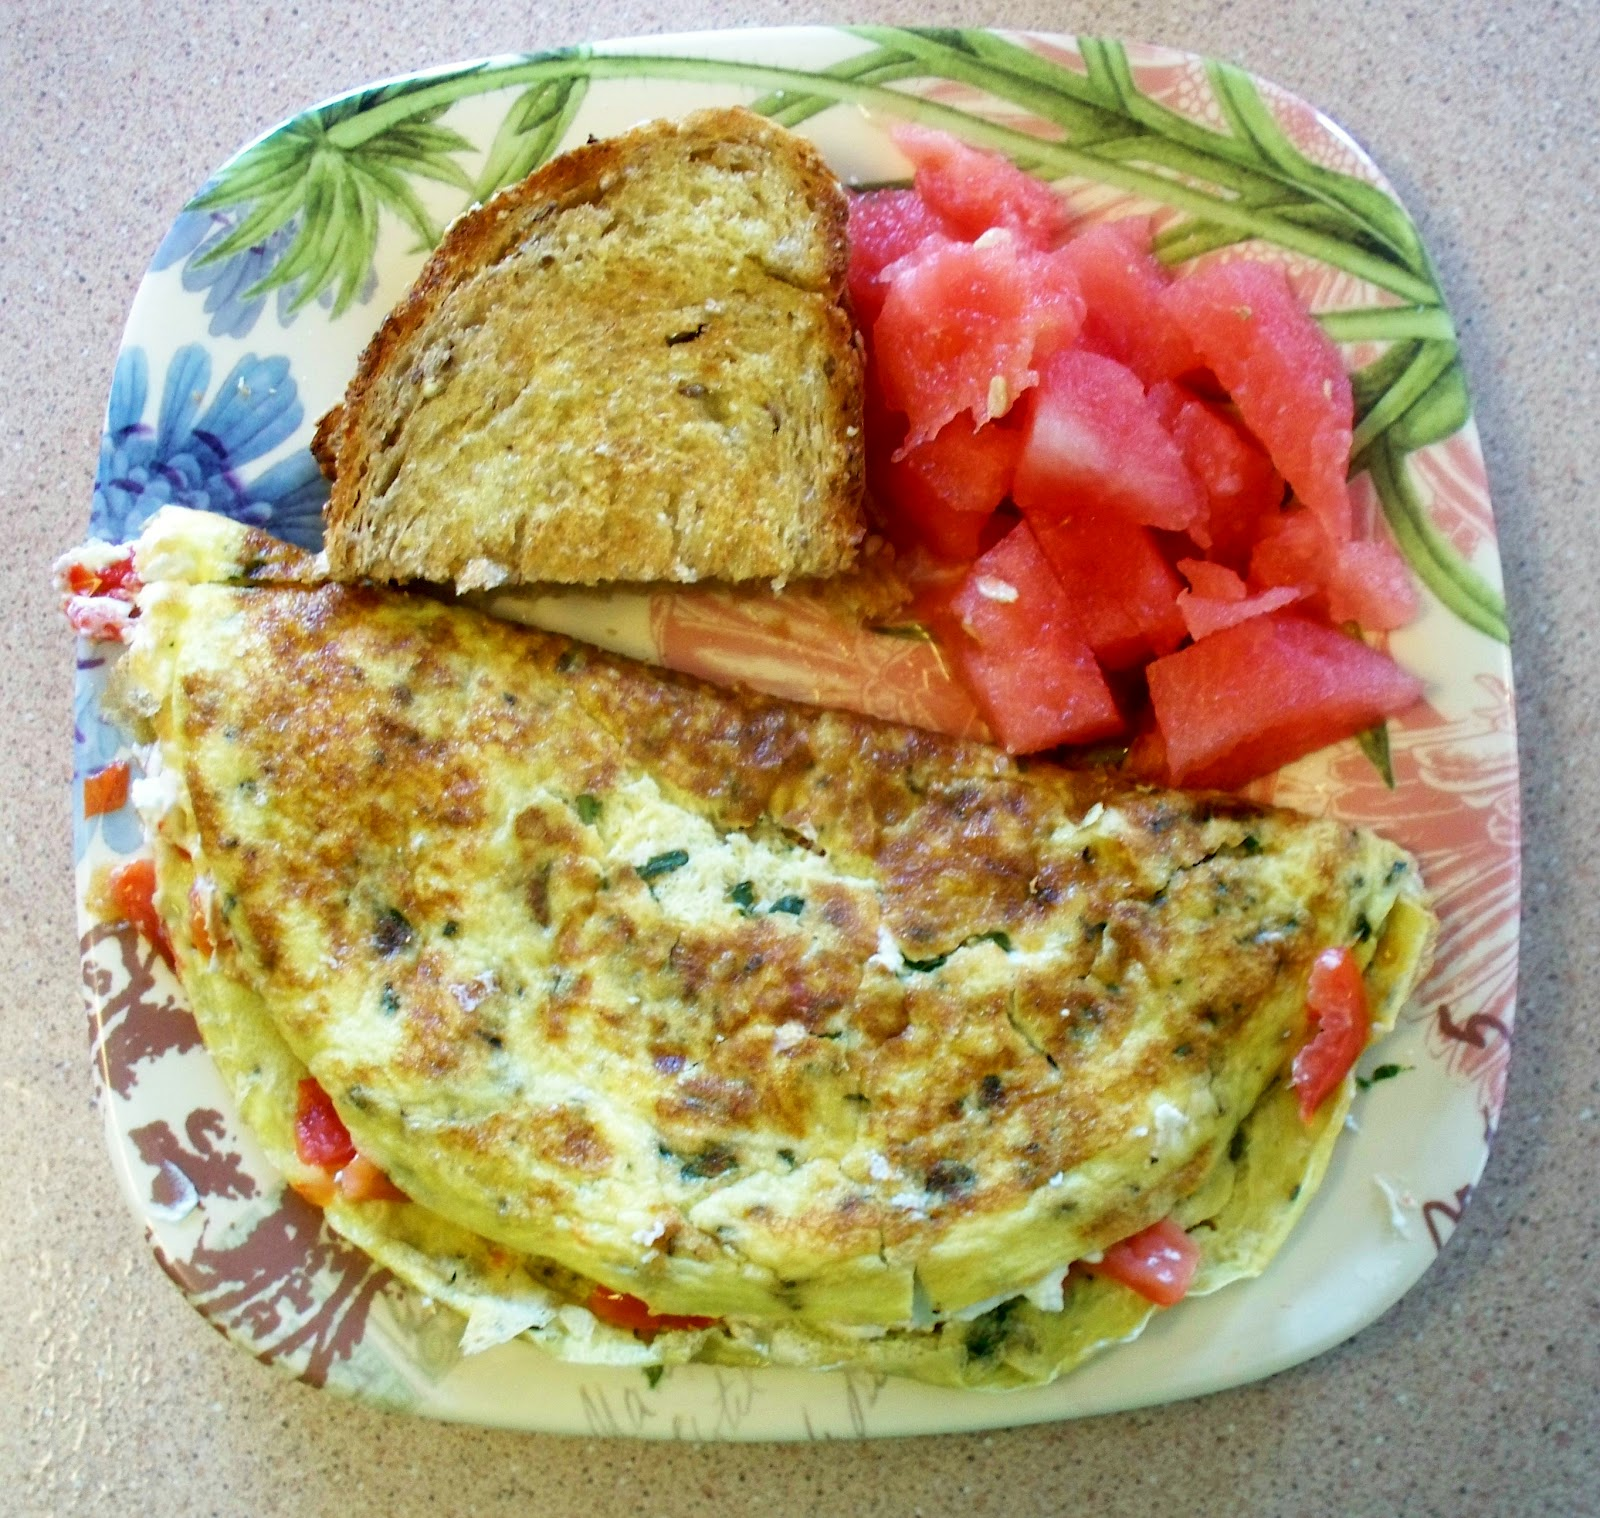 Fit and Lovin' it: Tomato Omelet with Goat Cheese and Herbs